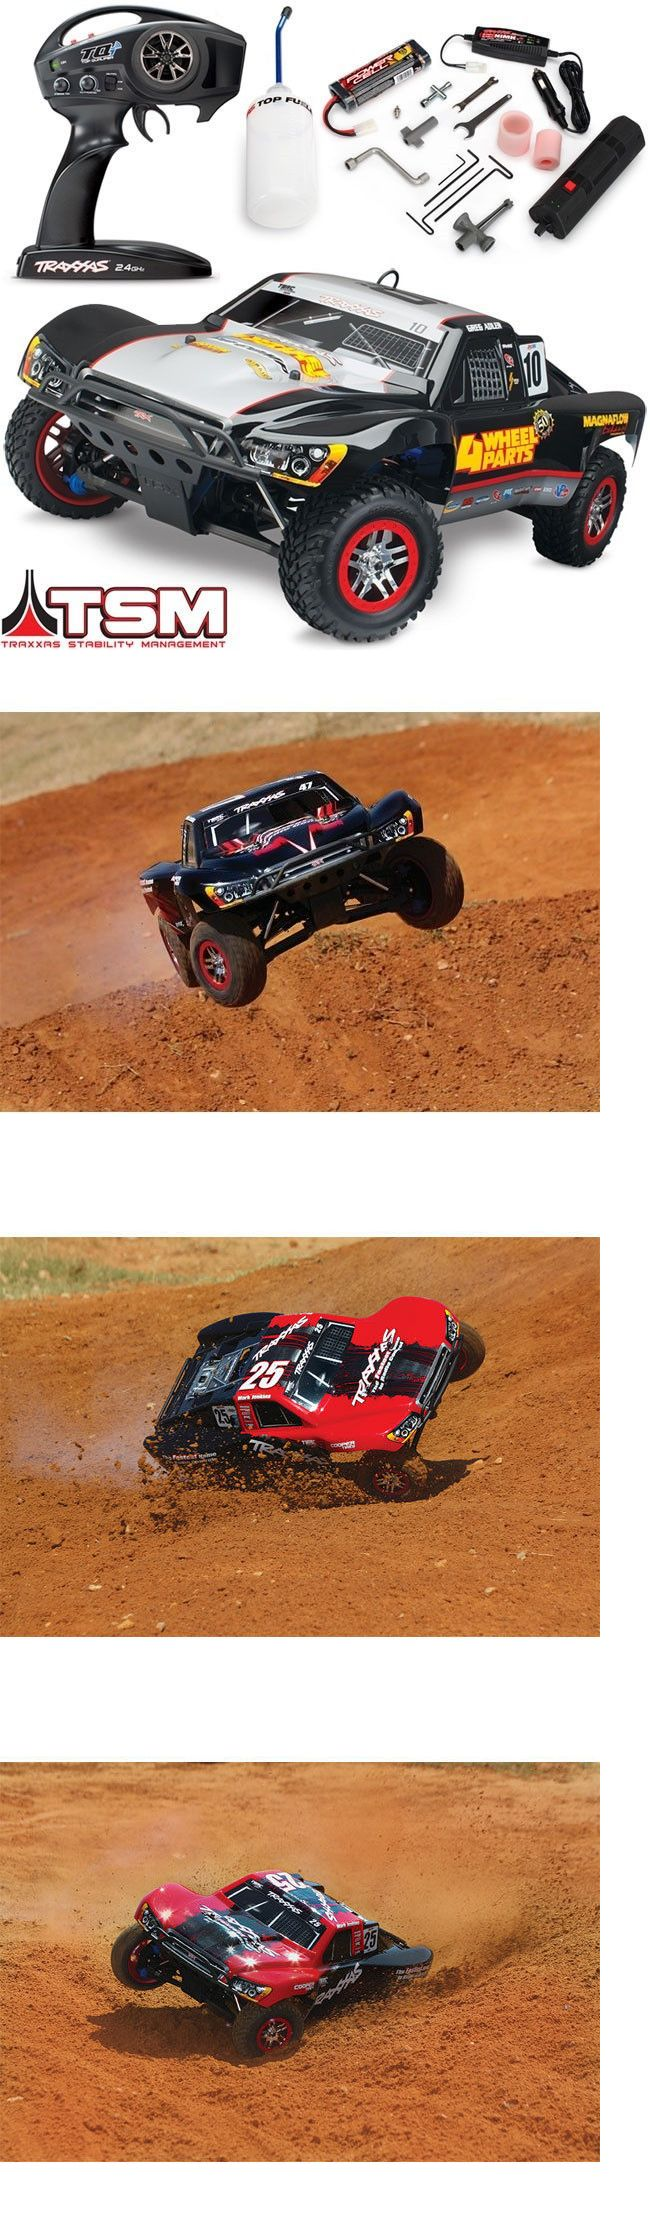 Cars Trucks and Motorcycles 182183: Traxxas Slayer Pro 4X4 Nitro Rtr Short Course Rc Truck W Tsm - 4-Wheel Parts -> BUY IT NOW ONLY: $419.95 on eBay!